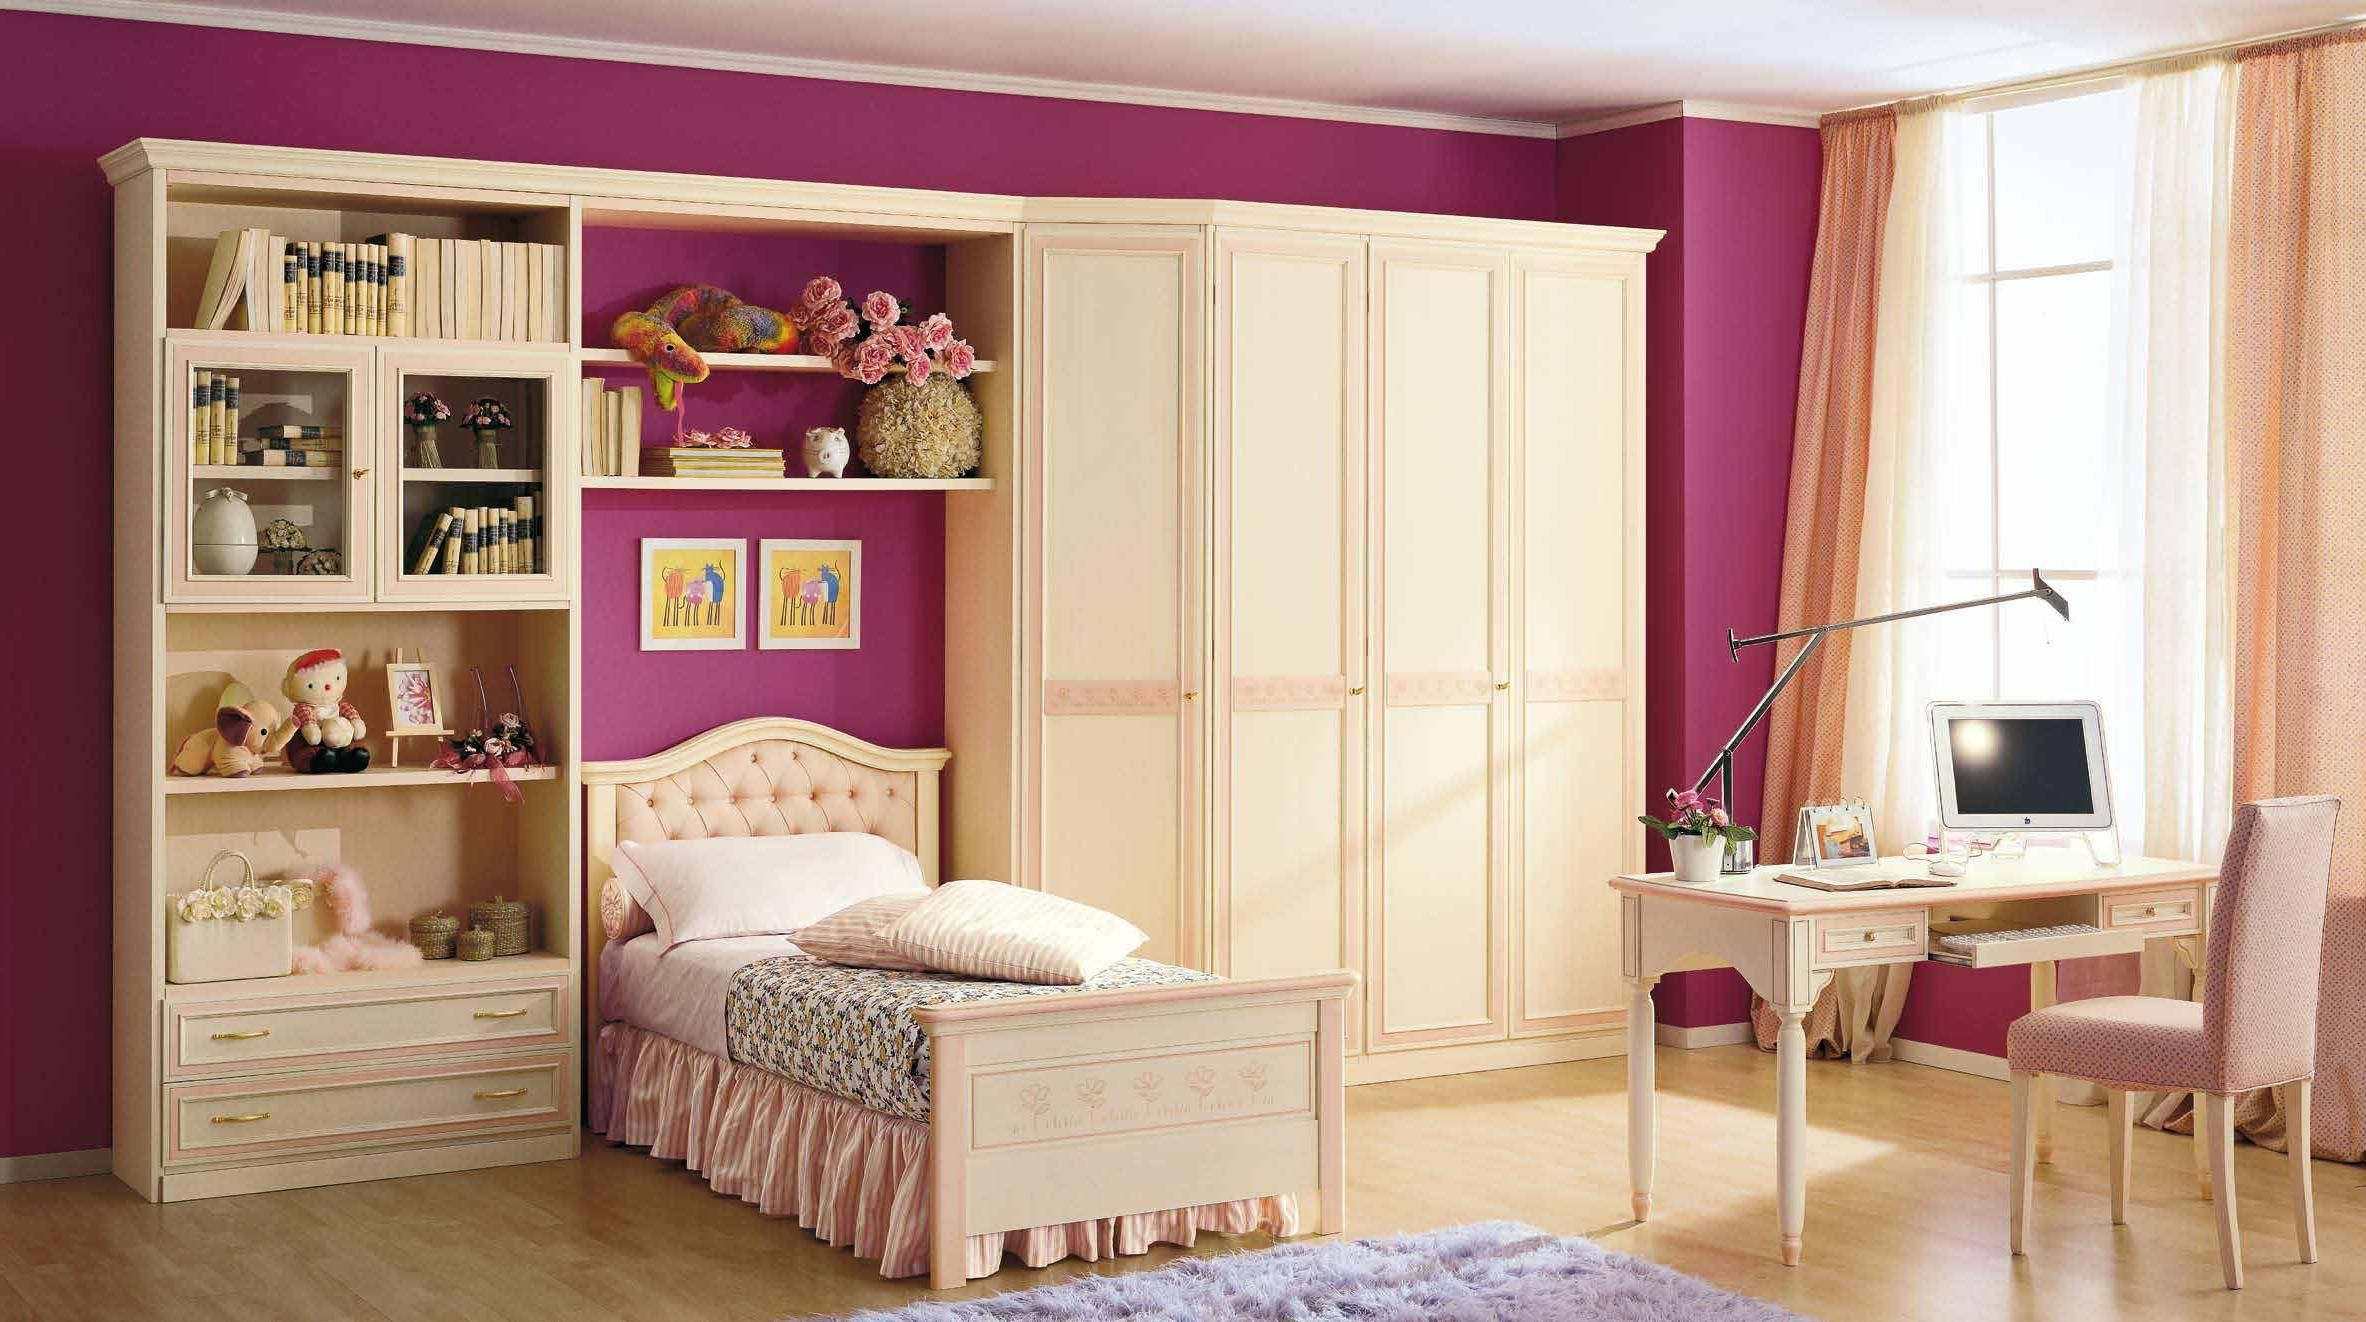 Painting For Girls Bedroom Contemporary Girls Bedroom Decoration With Pink Painting Wall